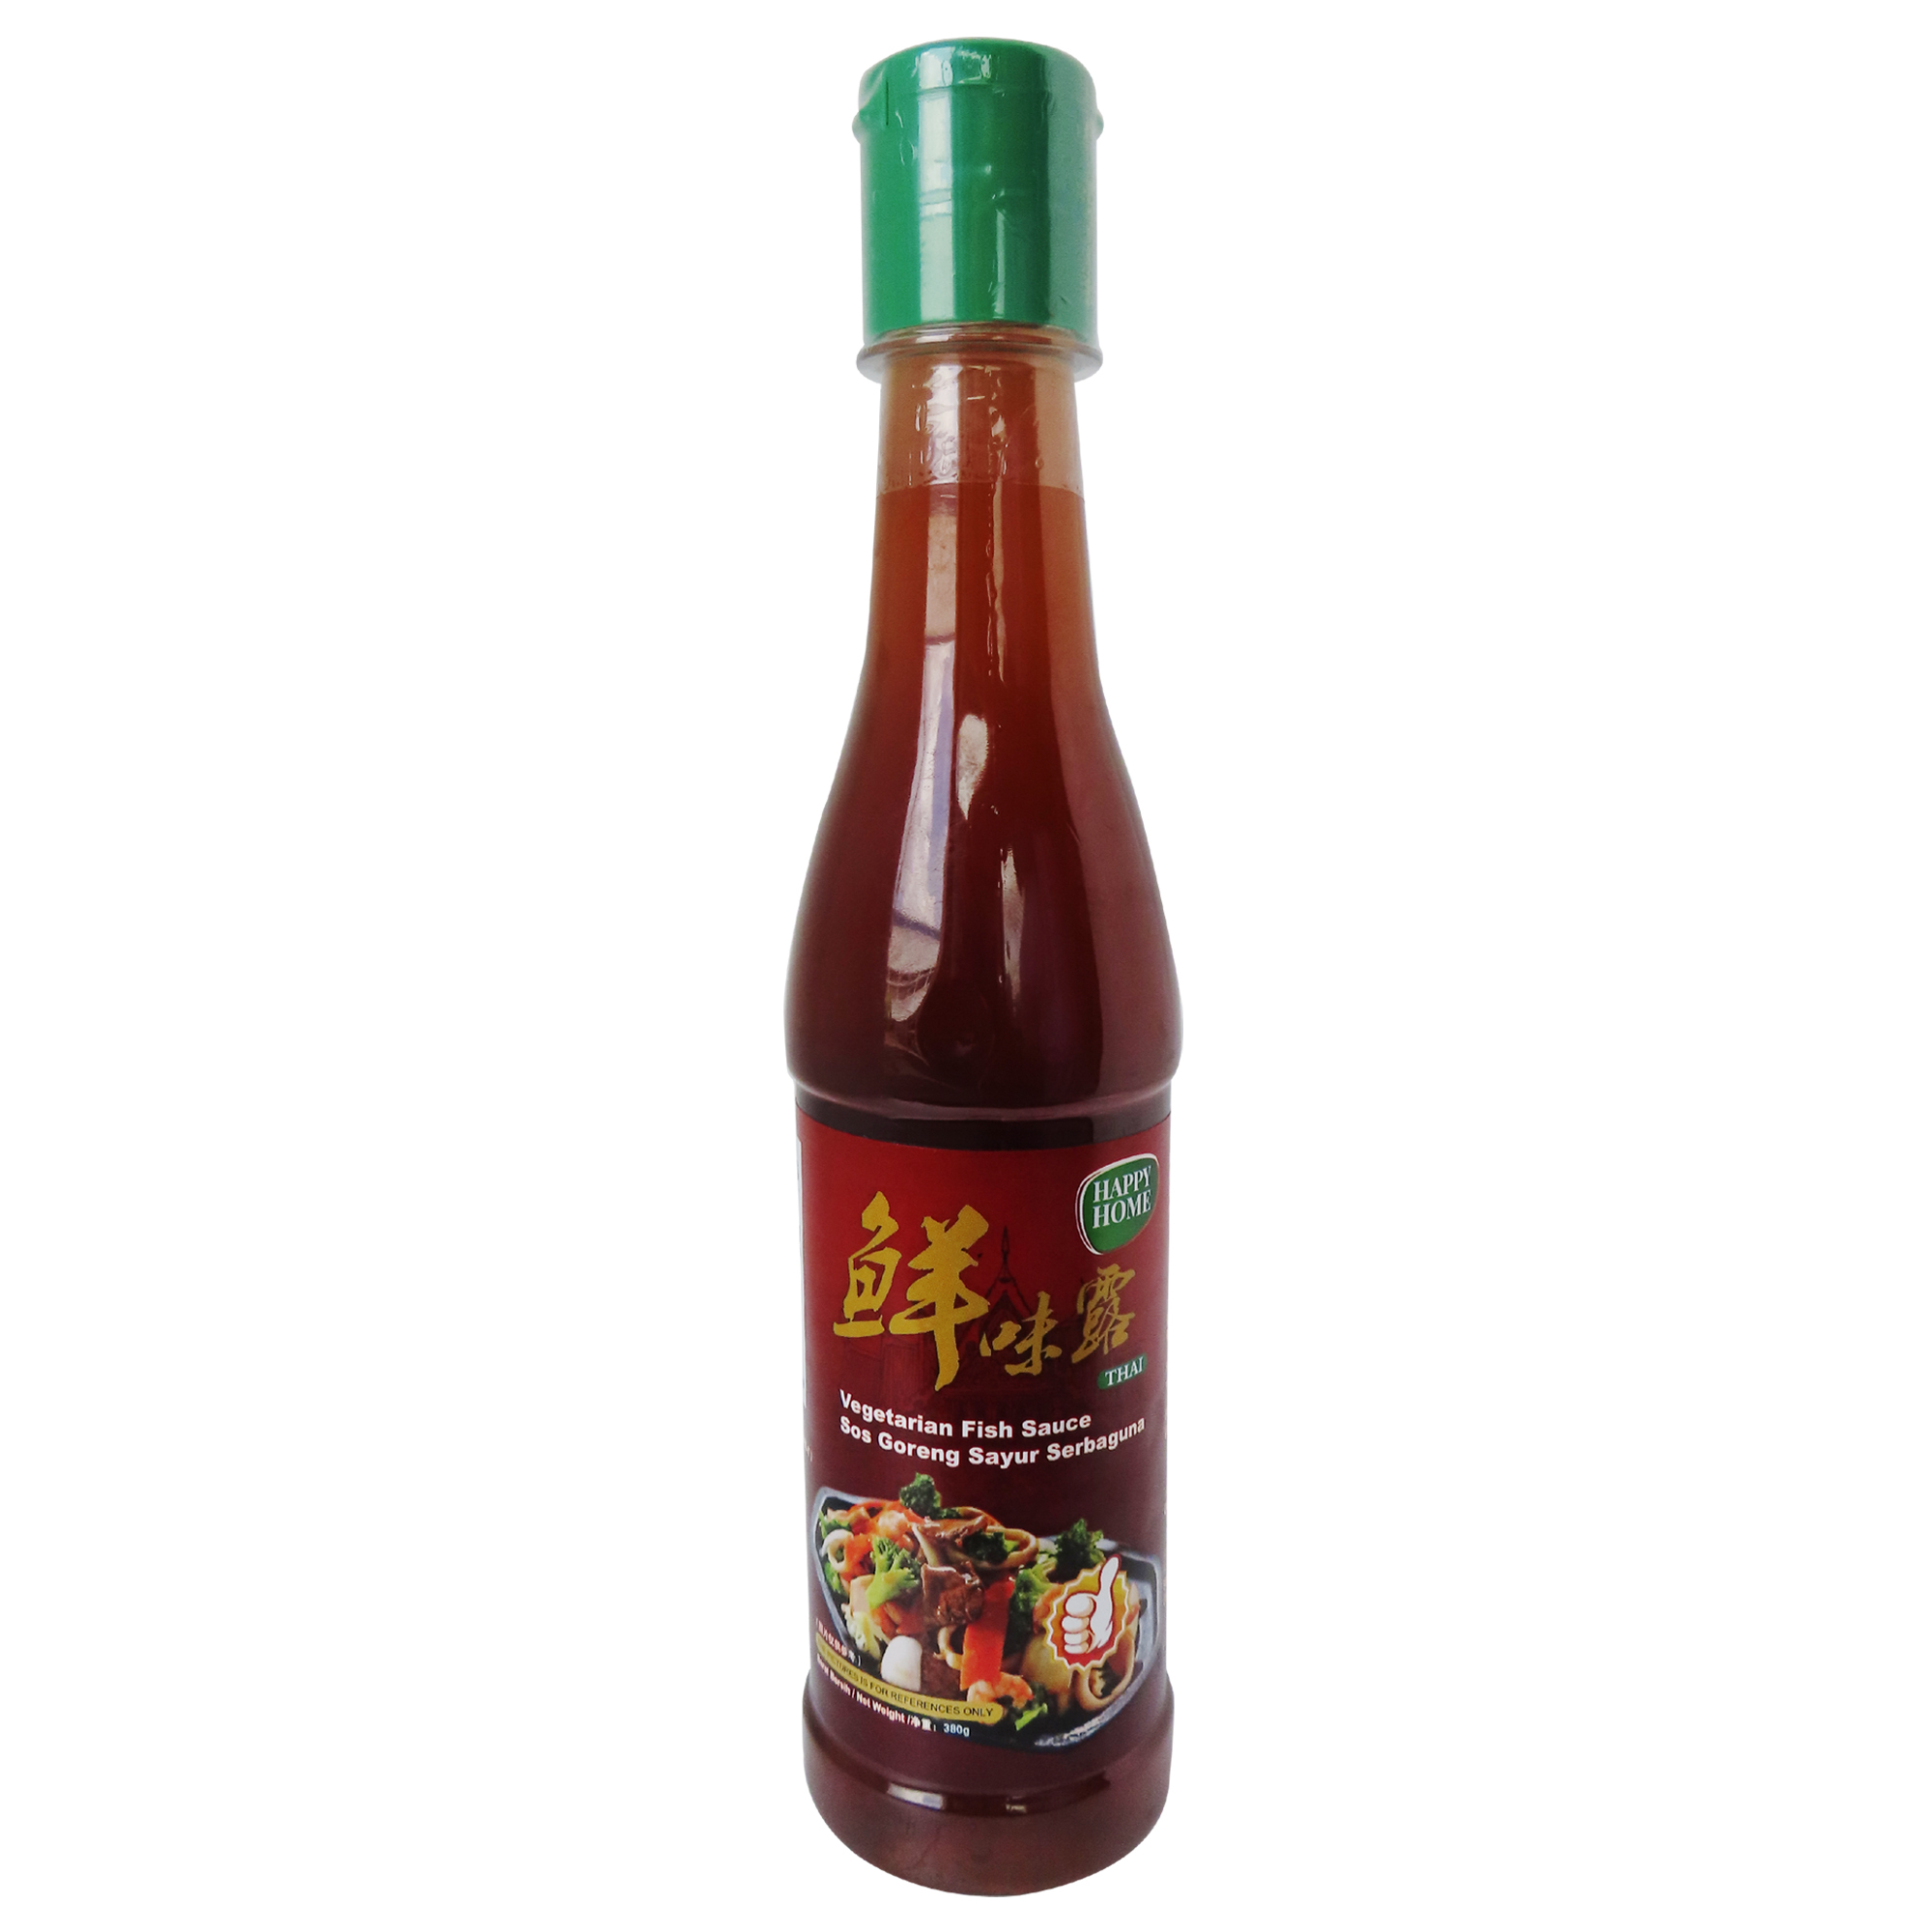 Image Happy Home Vegetarian Fish Sauce 鲜味露 380grams